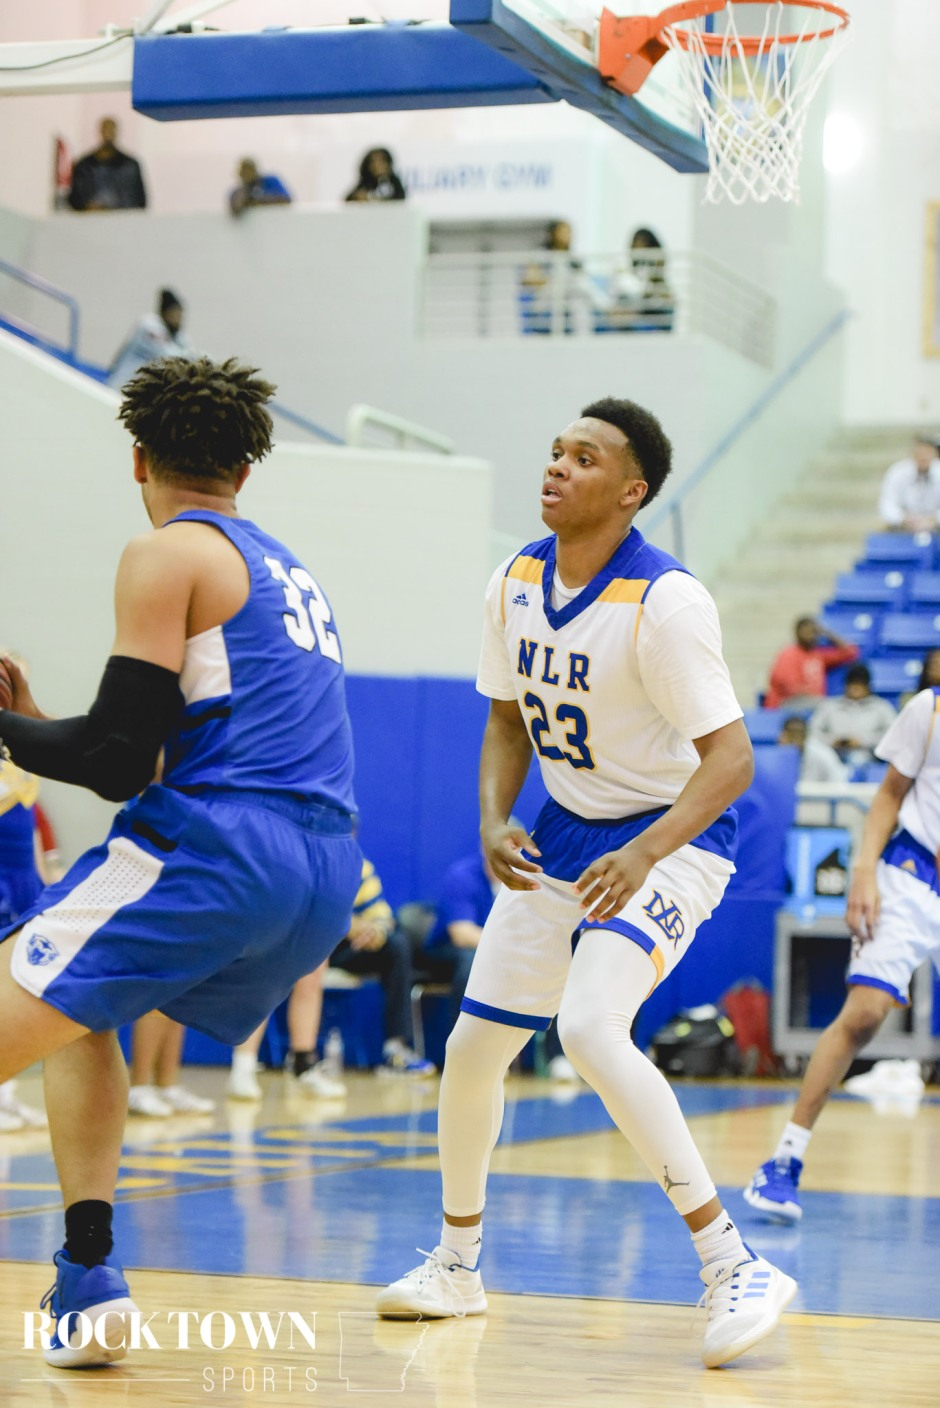 Conway_NLR_bball19(i)-67